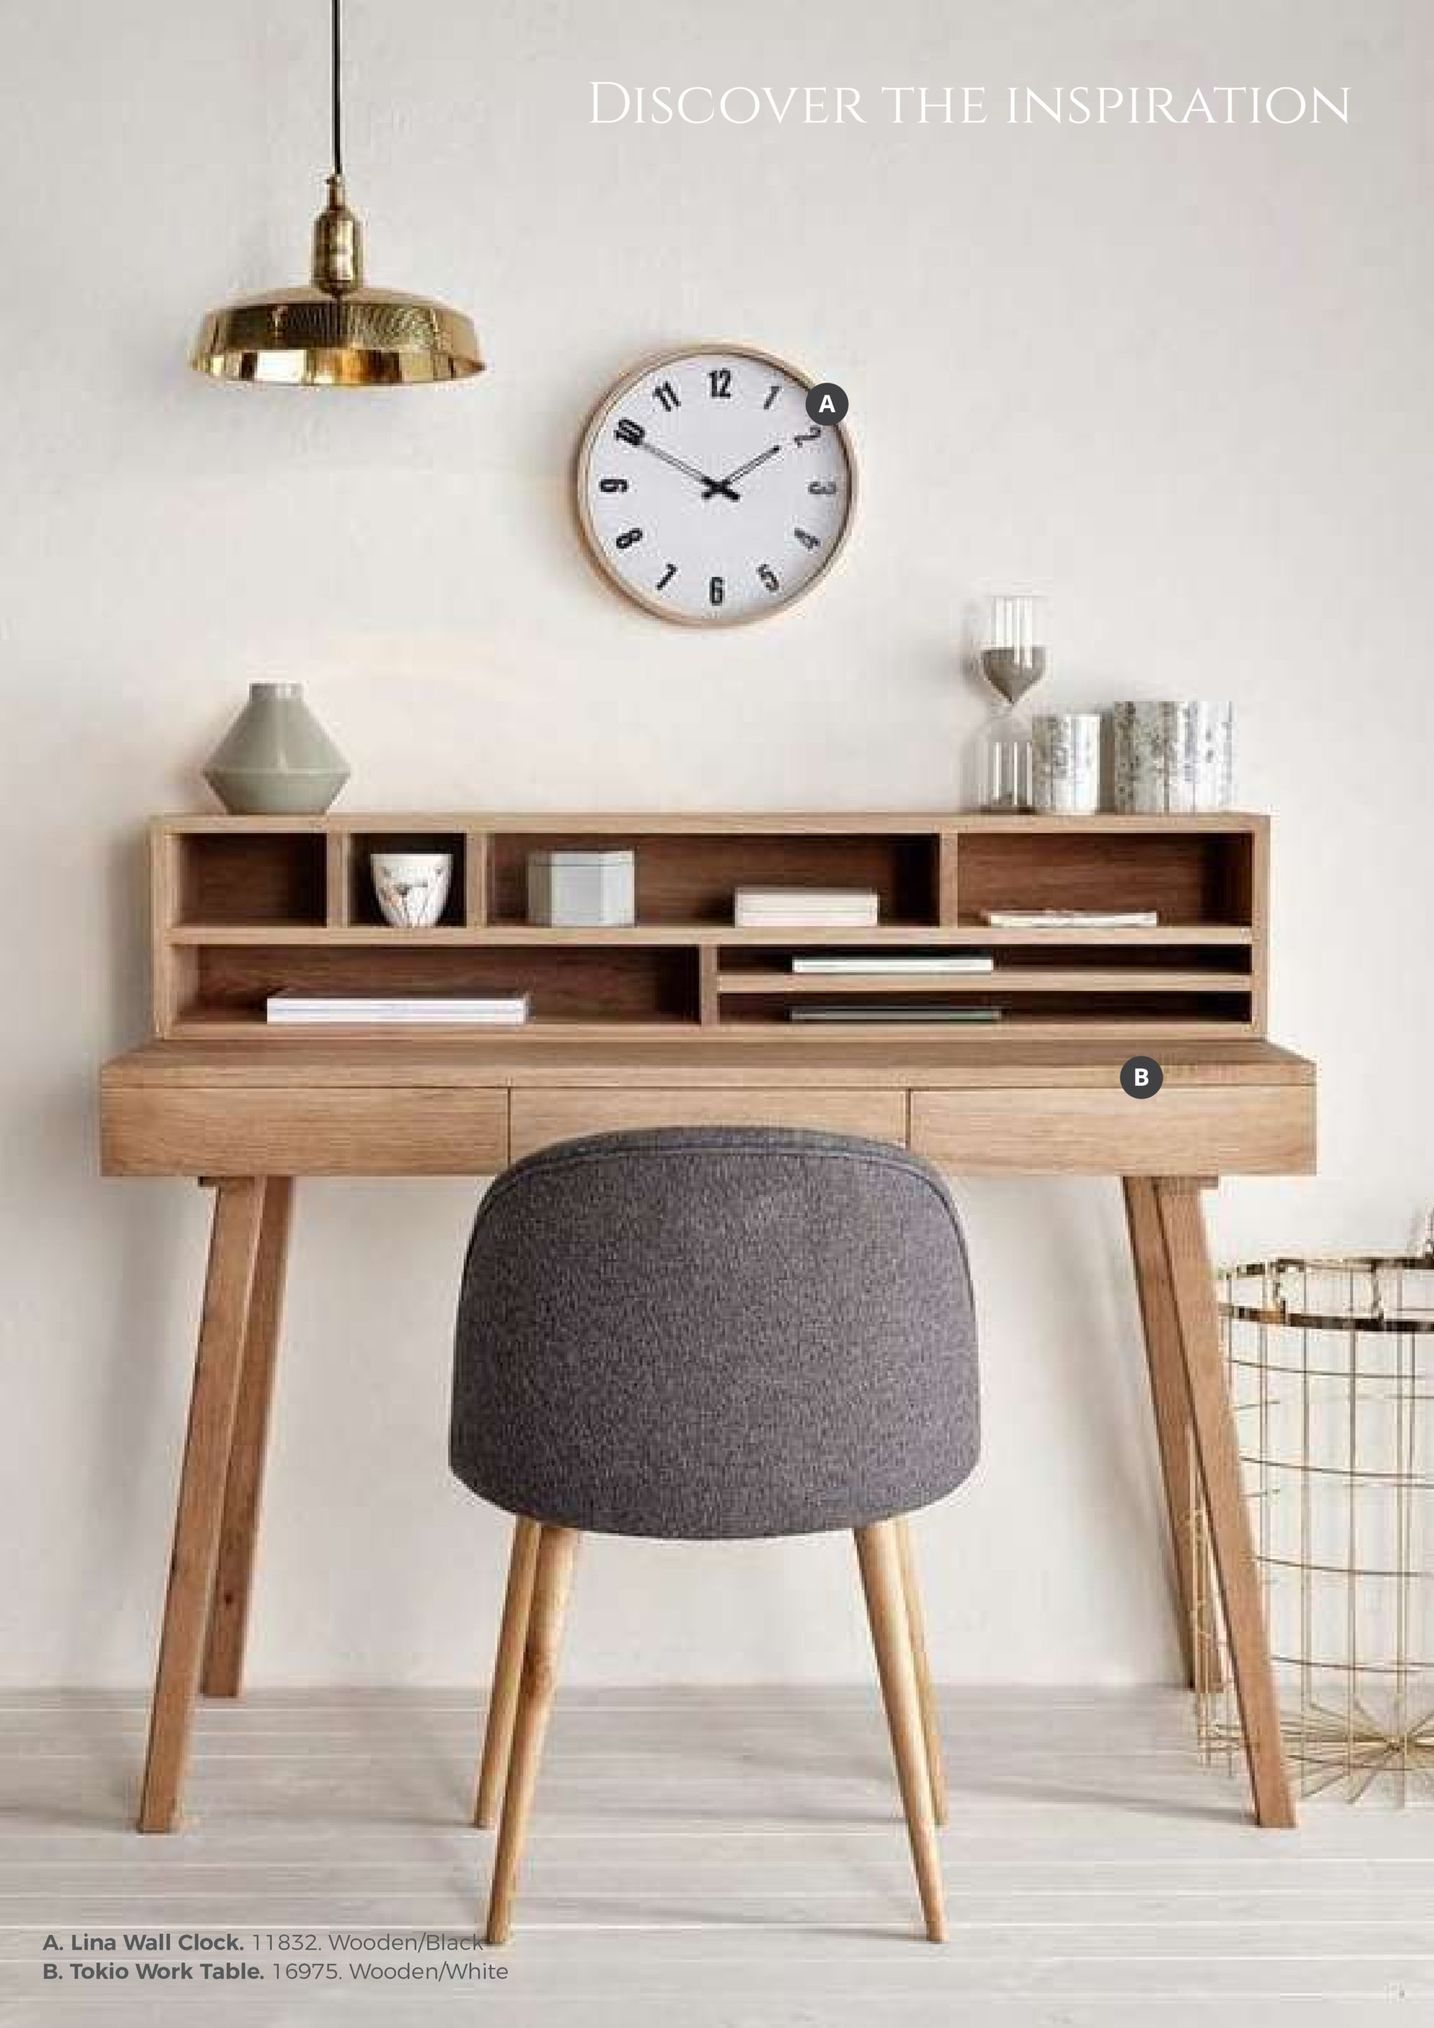 discover the inspiration 12 a. lina wall clock. 1 1 832, wooden/bl b. tokio work table. 16975. wooden/white